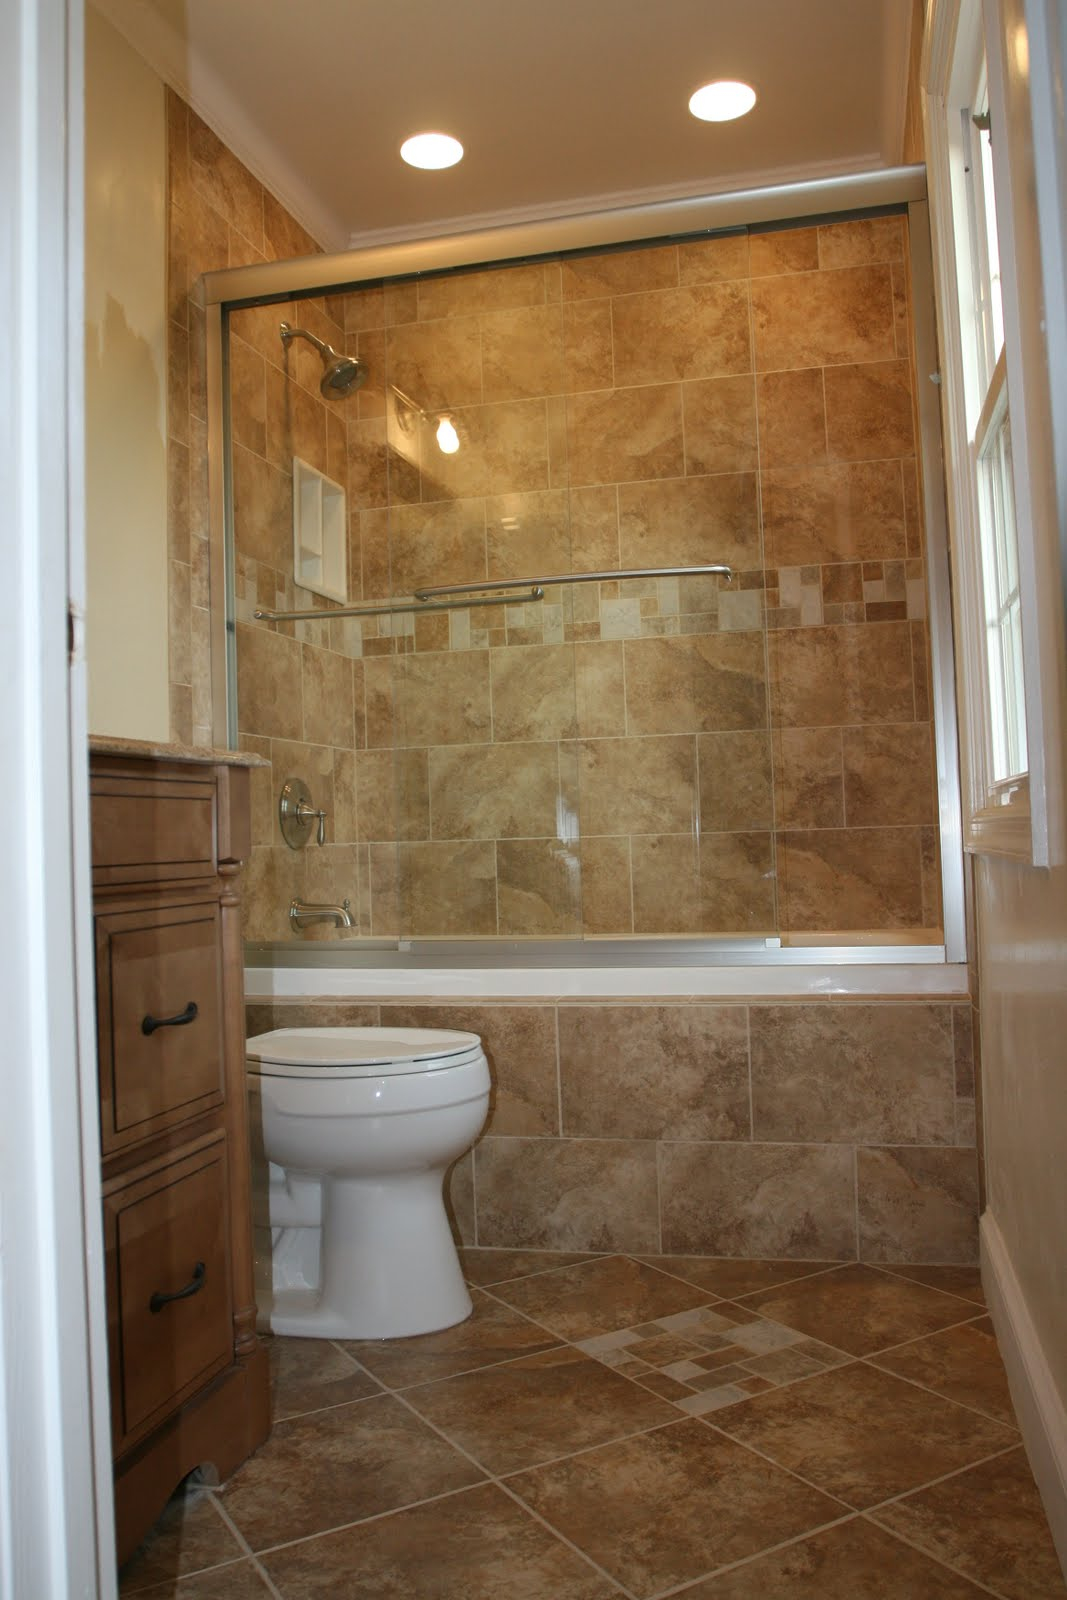 Bathroom remodeling photos for Small bathroom designs with shower and tub